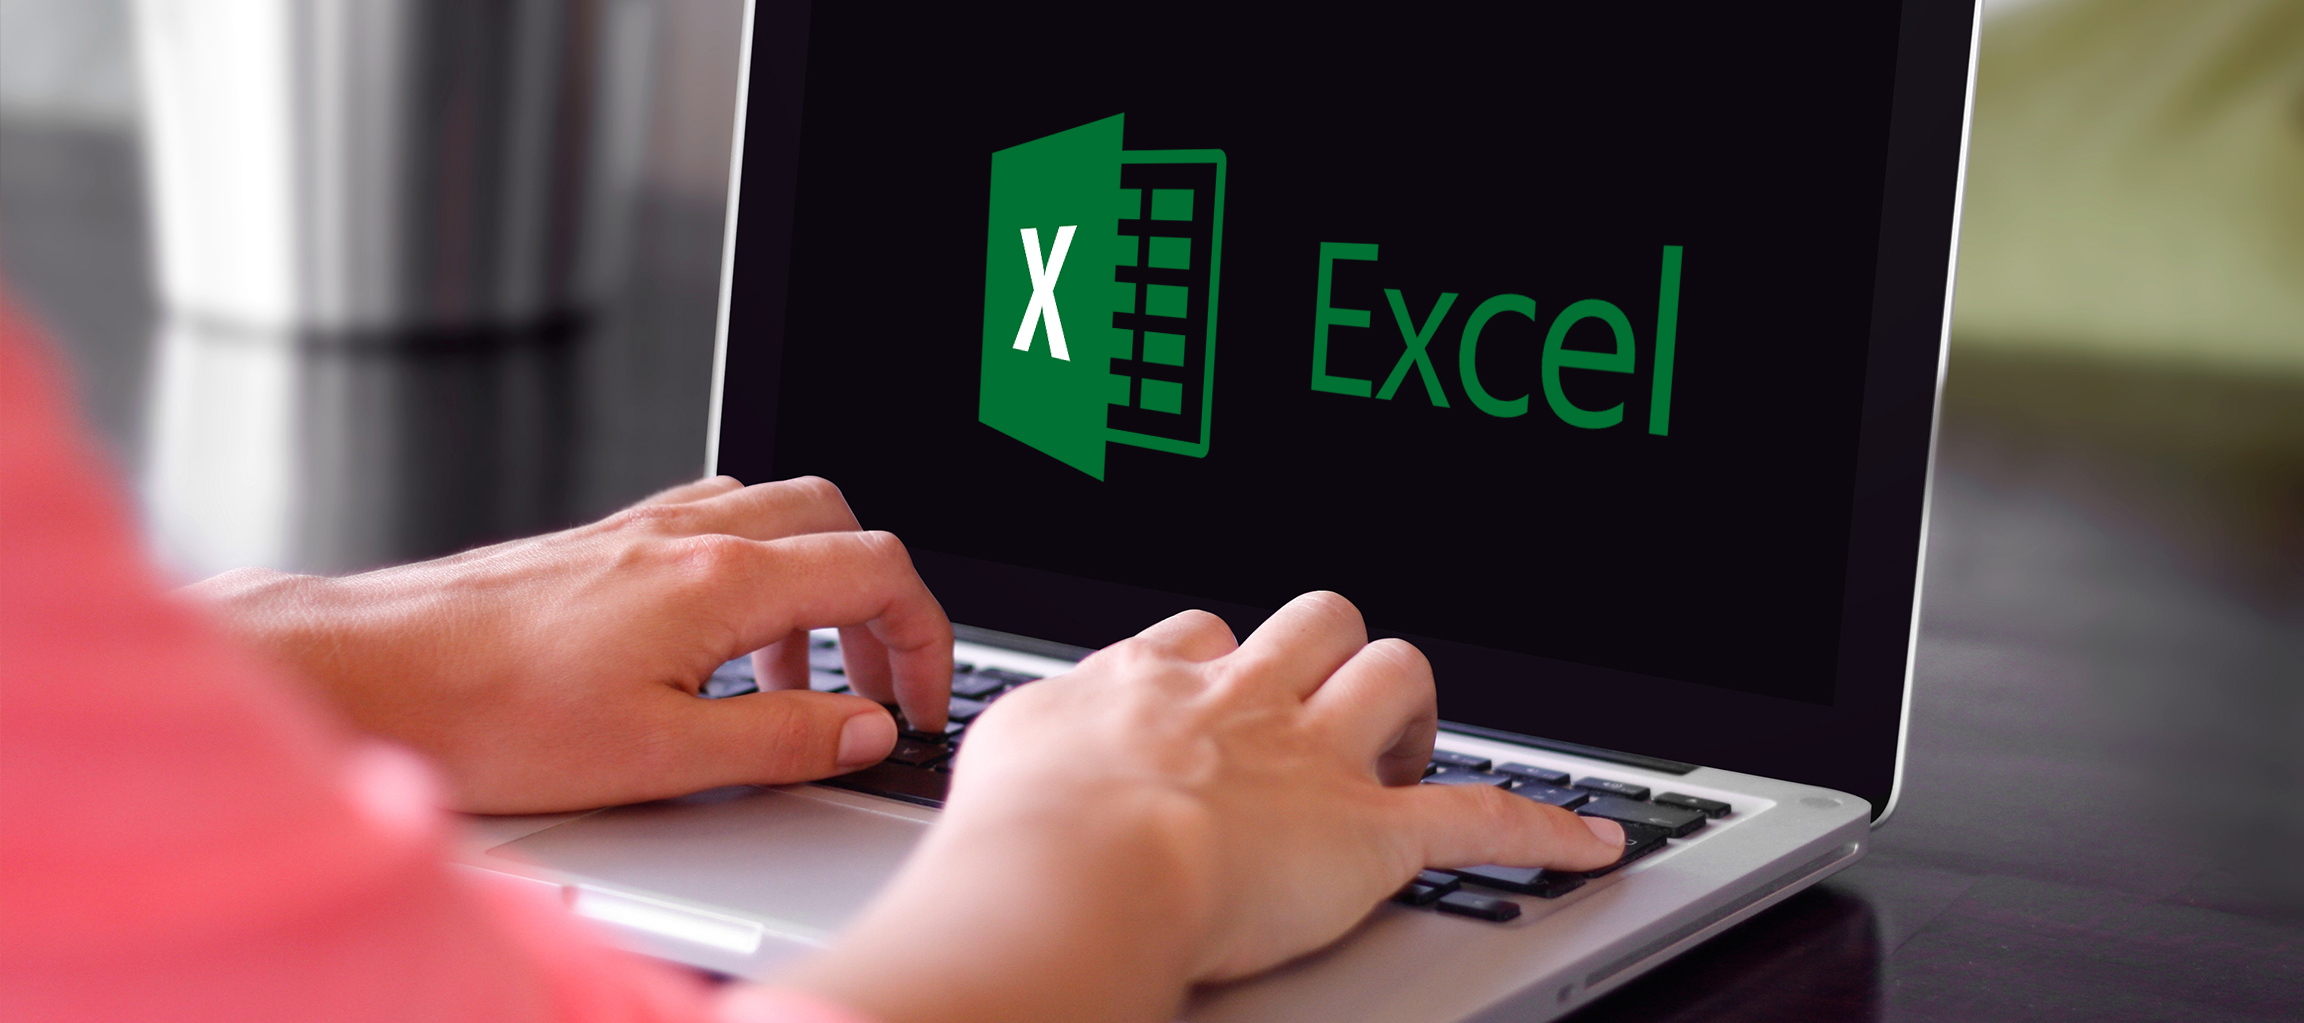 Learning And Making The Most Out of Excel